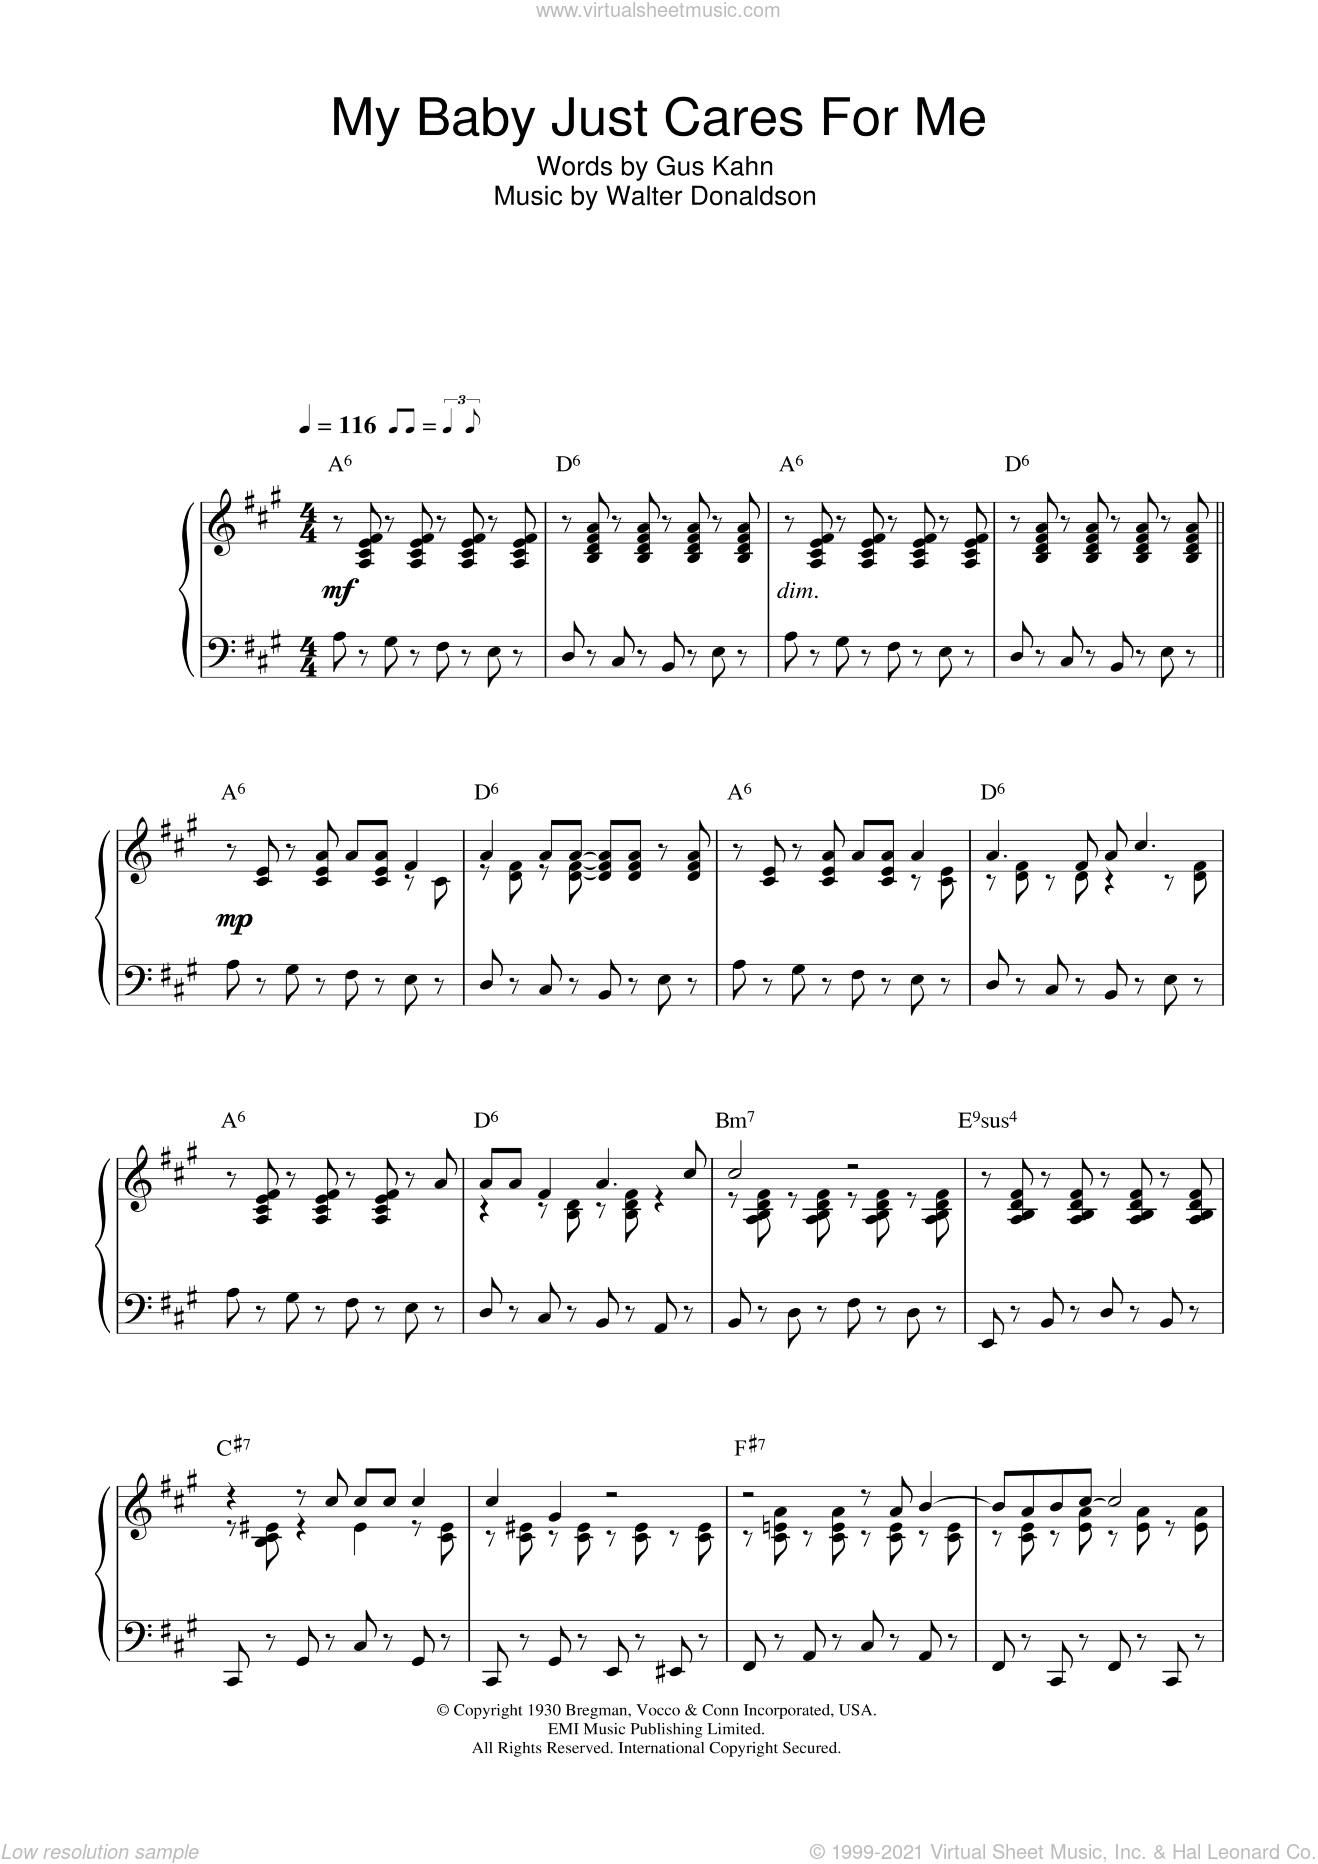 My Baby Just Cares For Me sheet music for piano solo by Nina Simone, Gus Kahn and Walter Donaldson, intermediate skill level